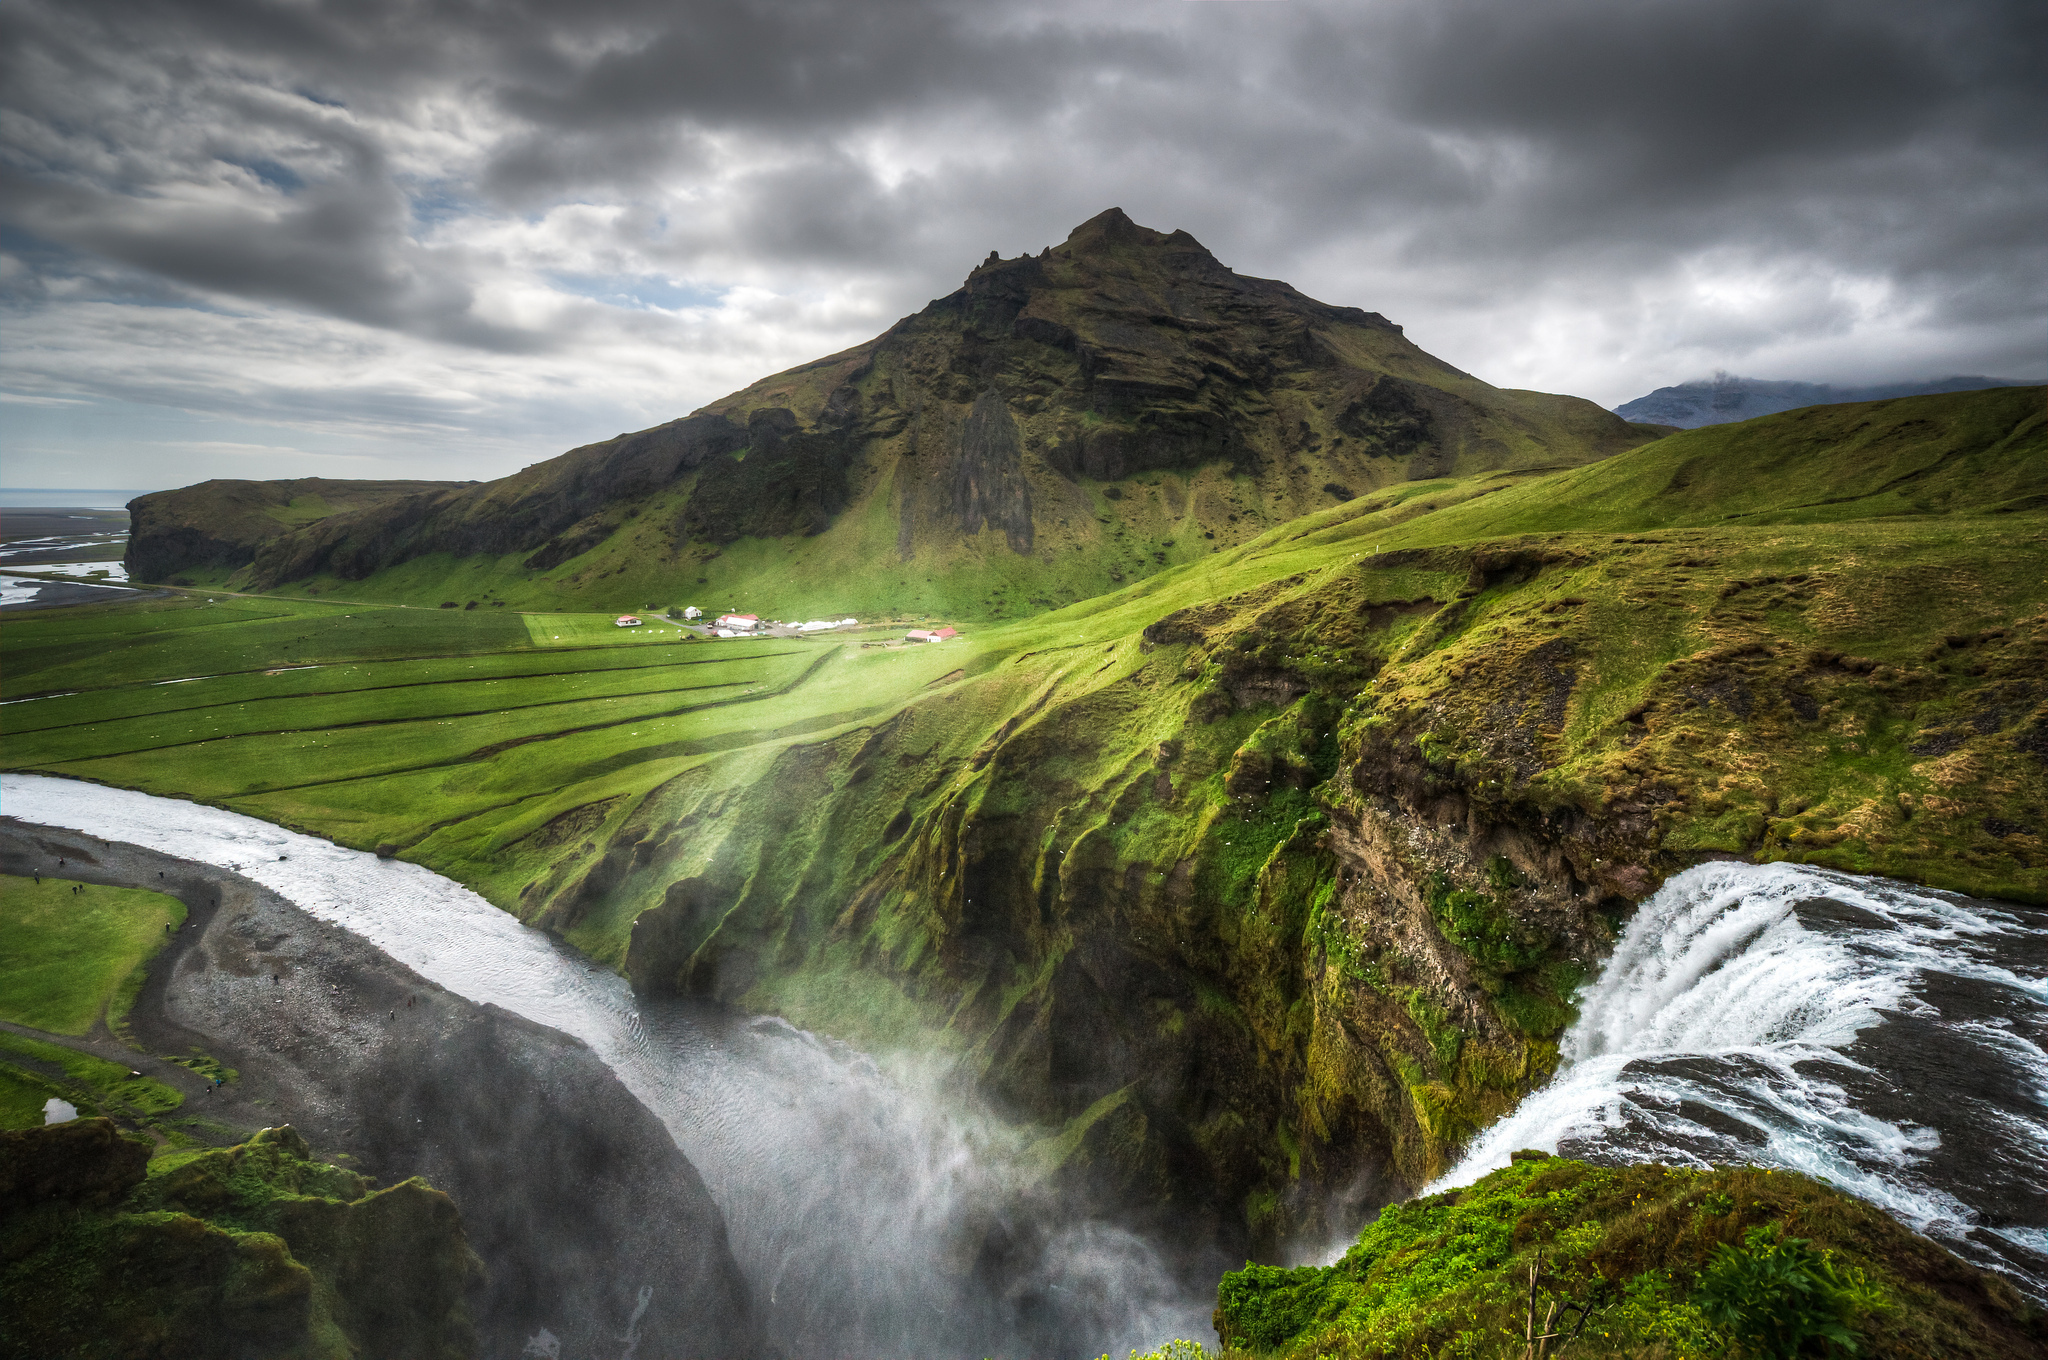 Iceland nature landscapes hills mountains waterfalls grass rocks water 2048x1360